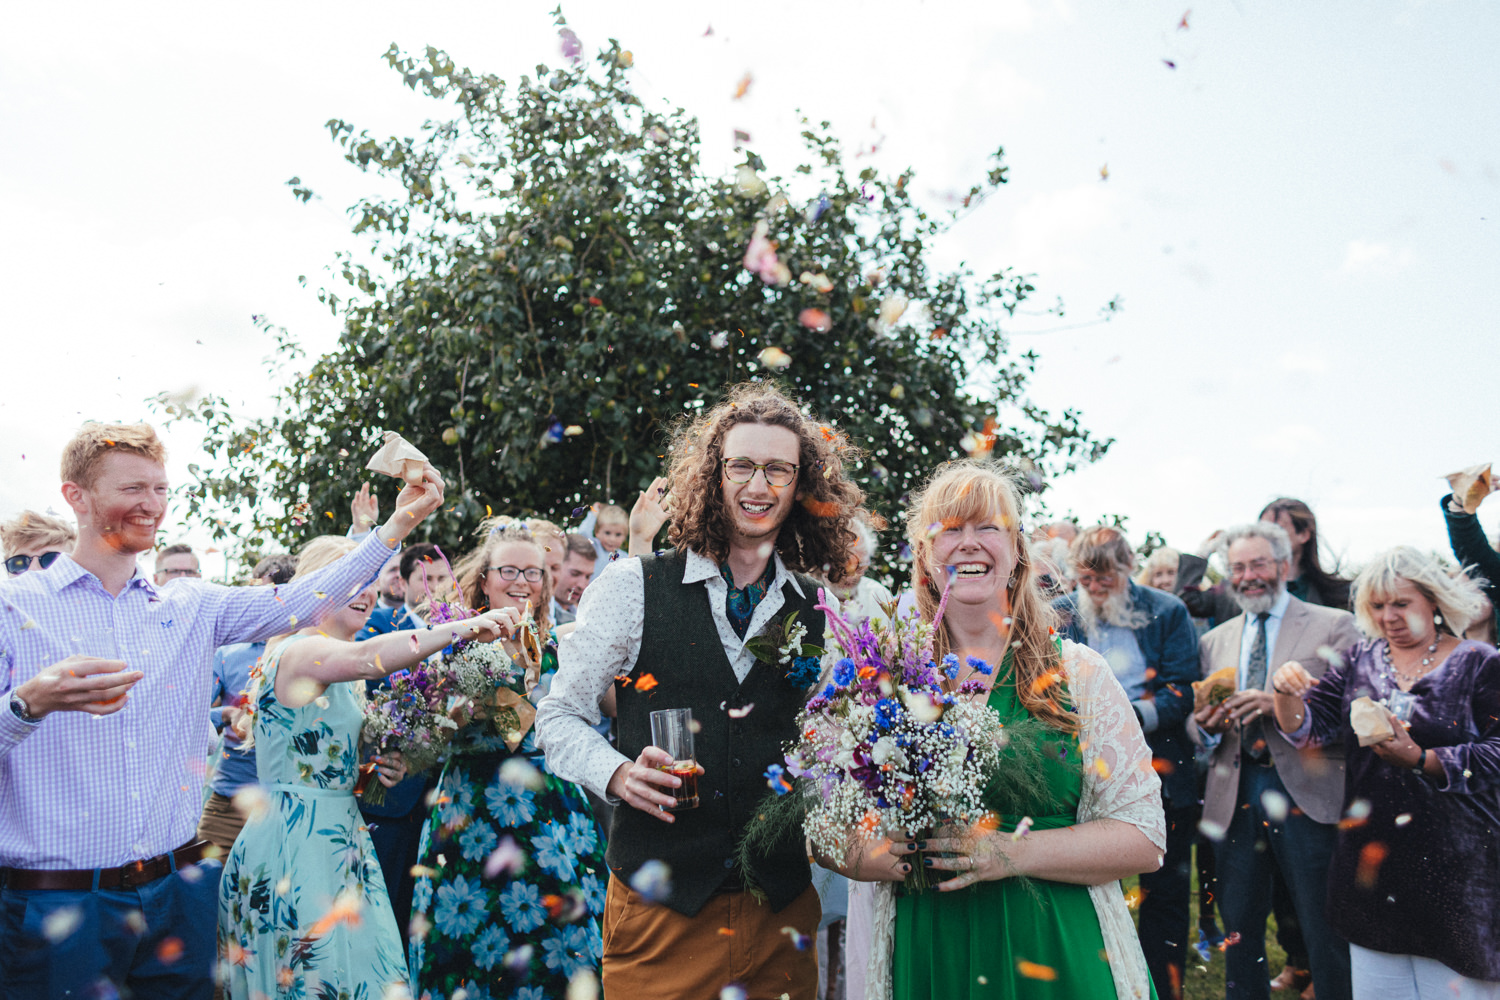 confetti, outdoor wedding photography, farm wedding, devon wedding, devon wedding photographer, alternative wedding, eco friendly wedding, green wedding